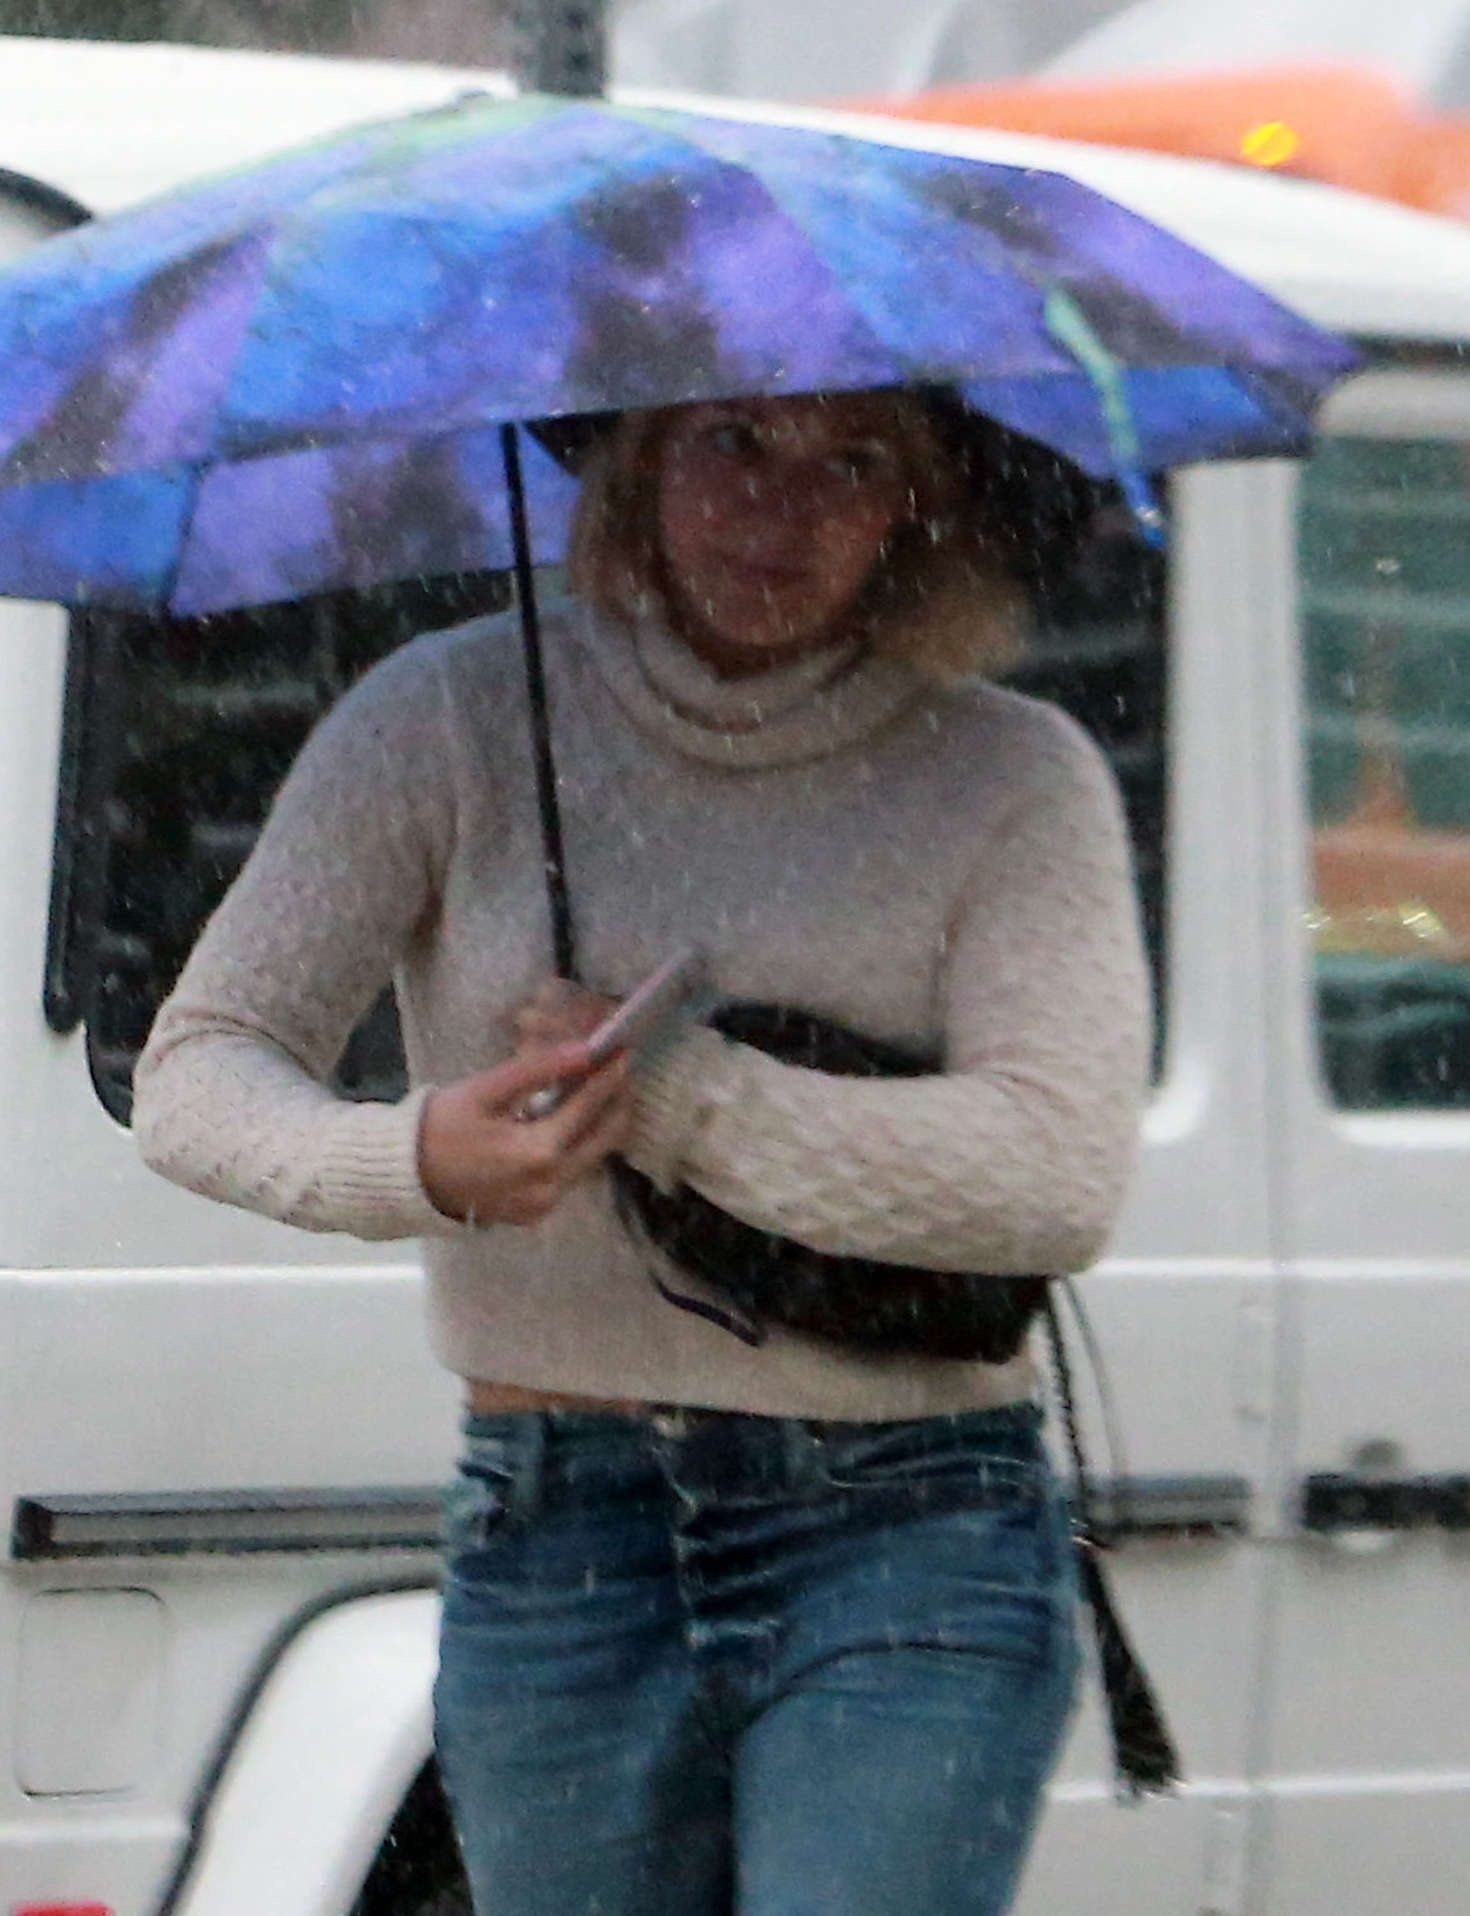 Hilary Duff 2016 : Hilary Duff in Jeans out on a rainy day -04